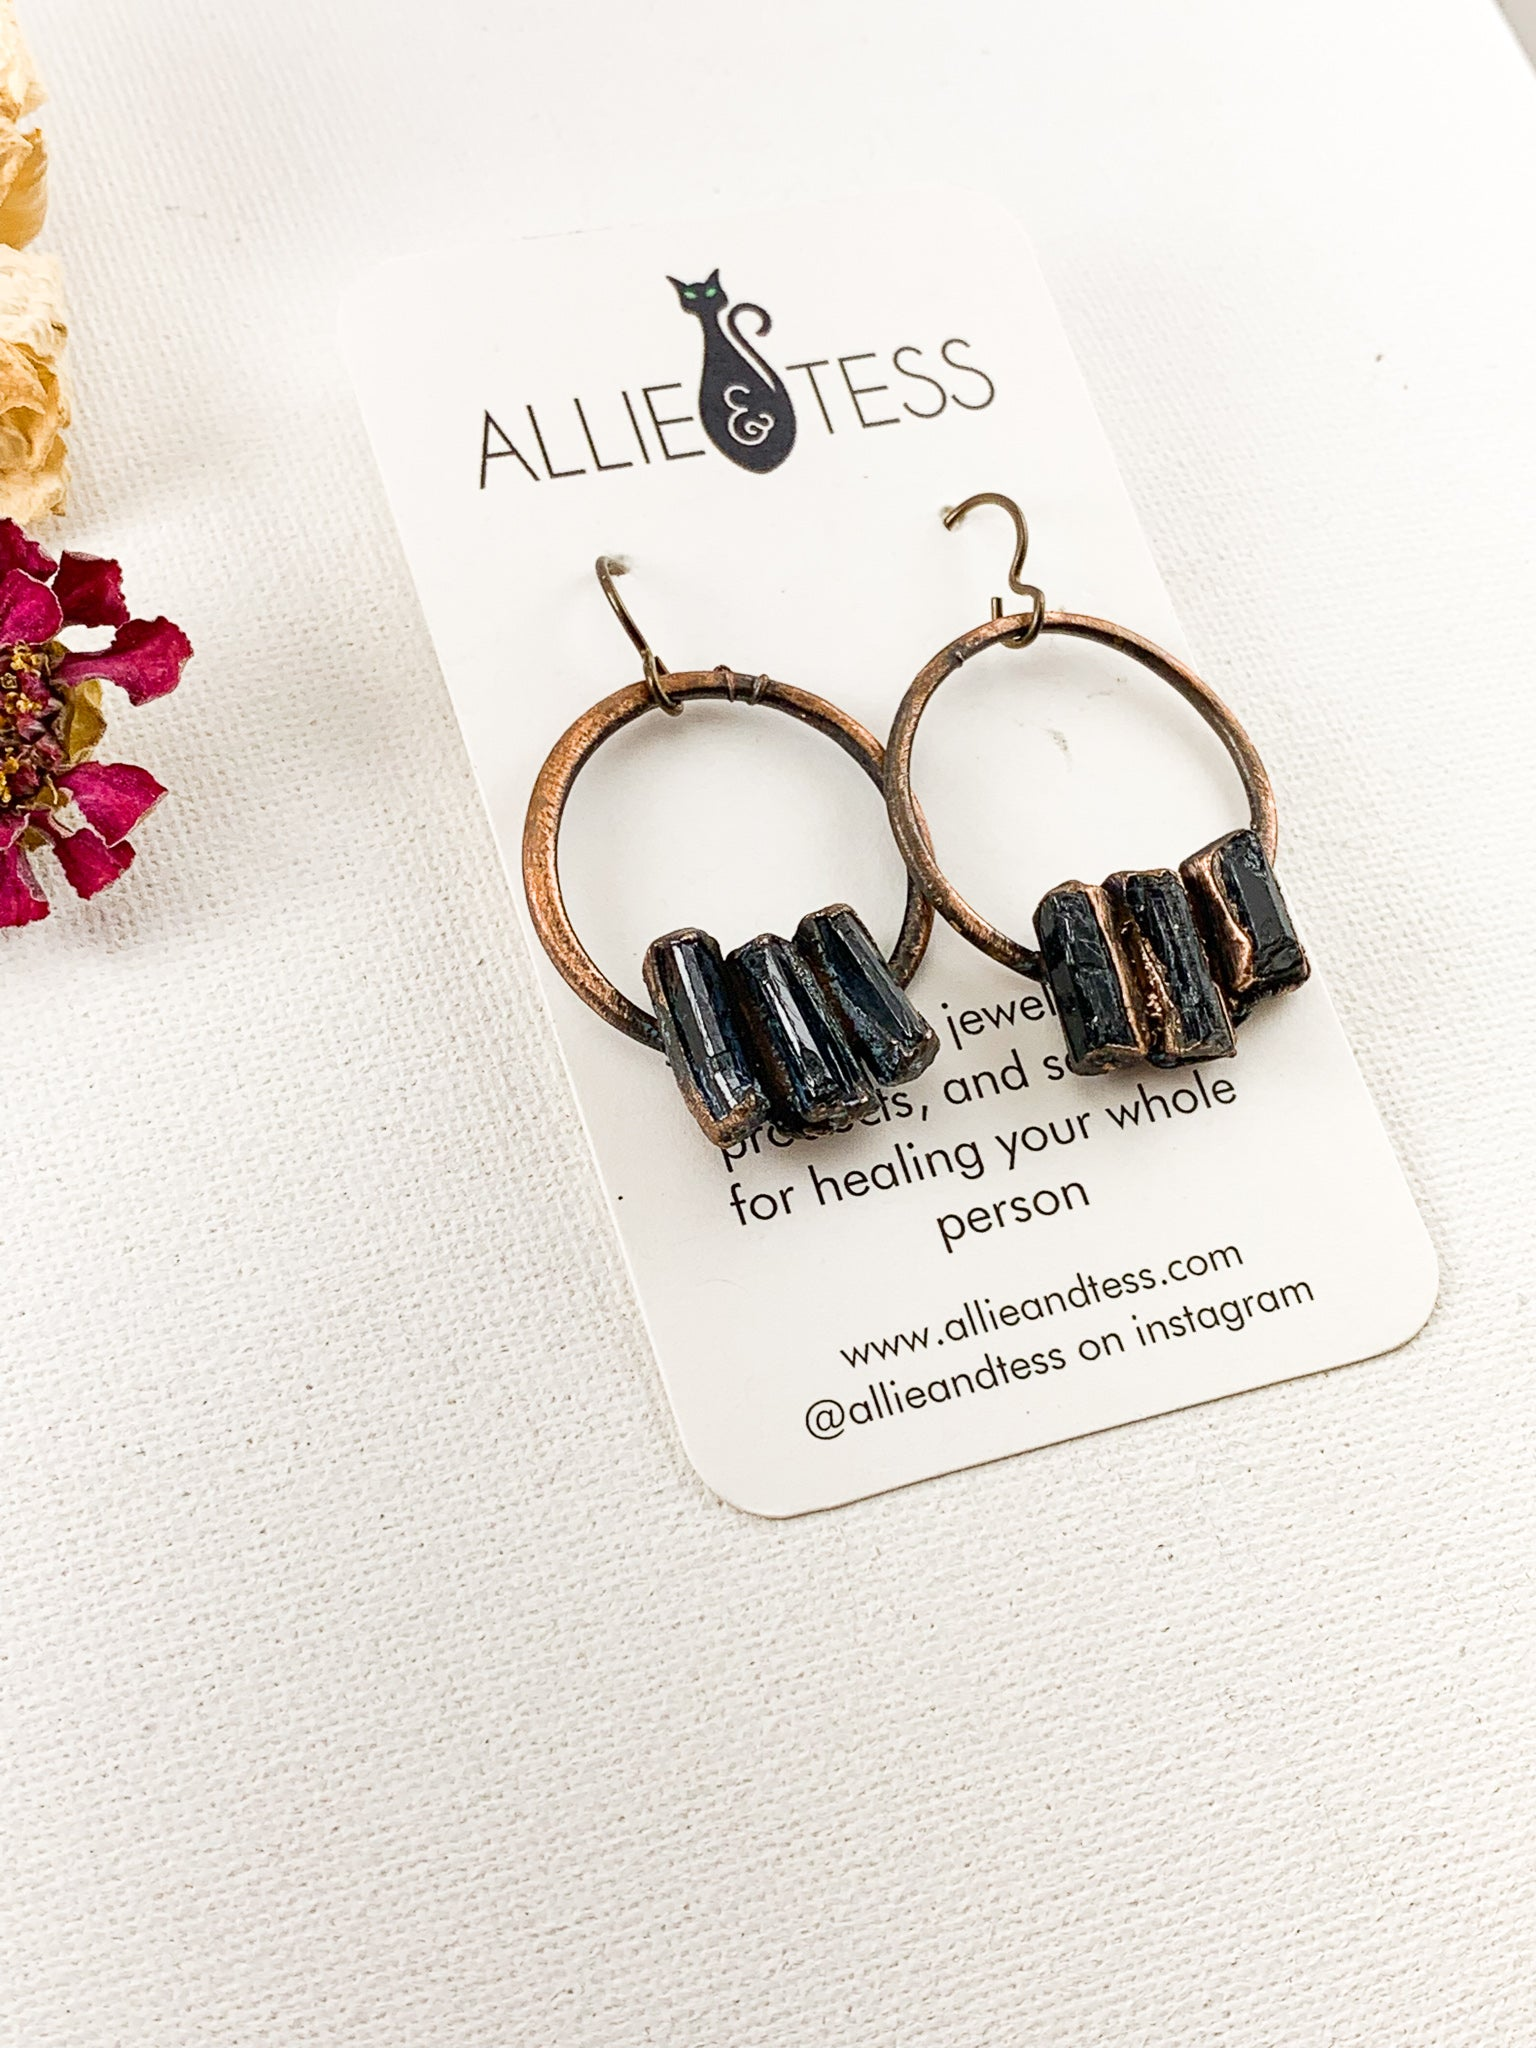 Black Tourmaline Hoops - Allie & Tess